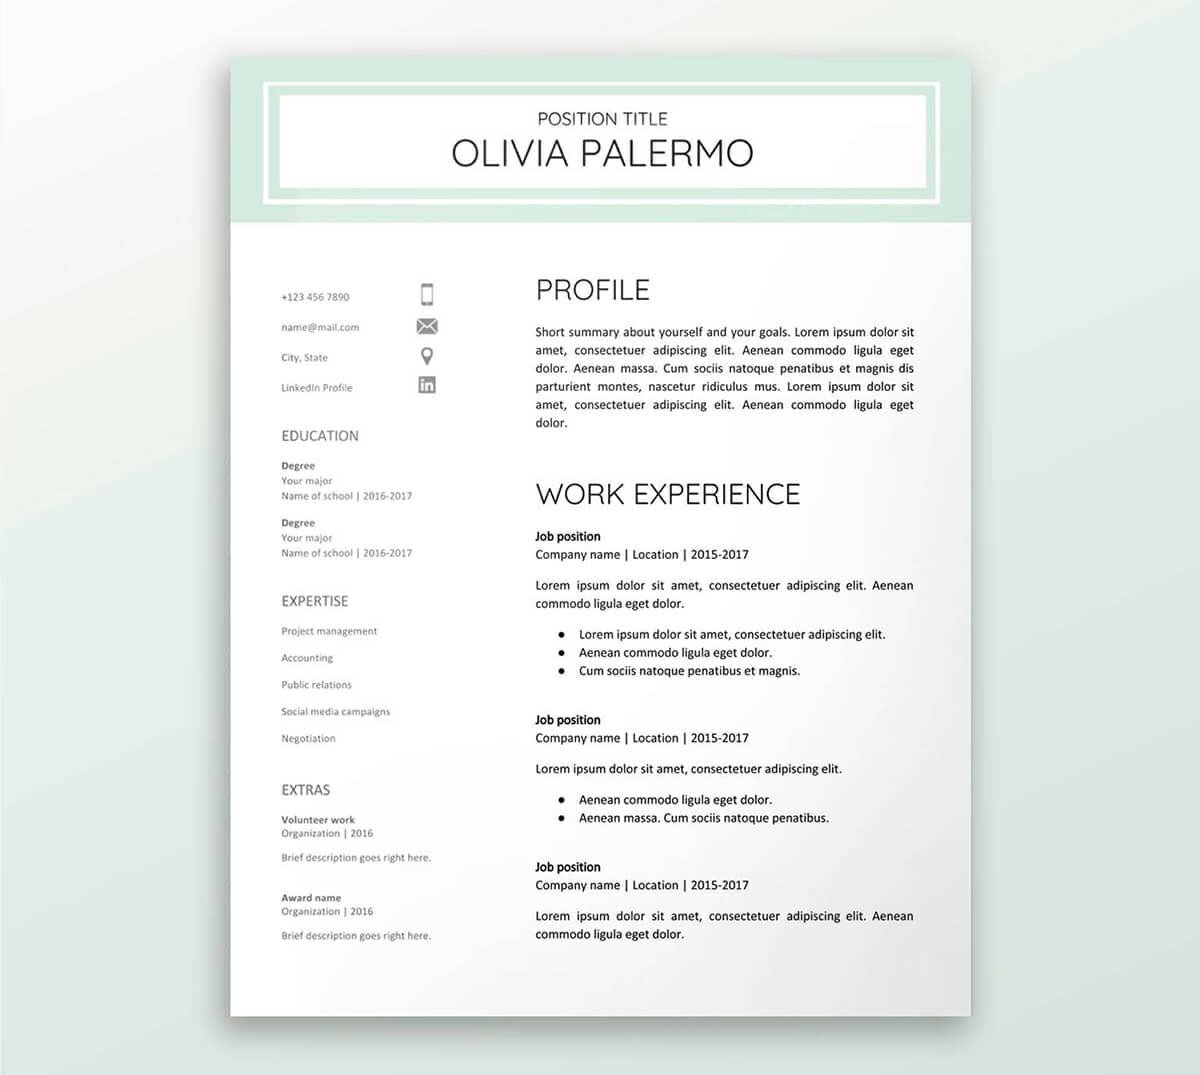 free google docs resume templates drive alternatives experienced chartered accountant Resume Free Google Docs Resume Templates